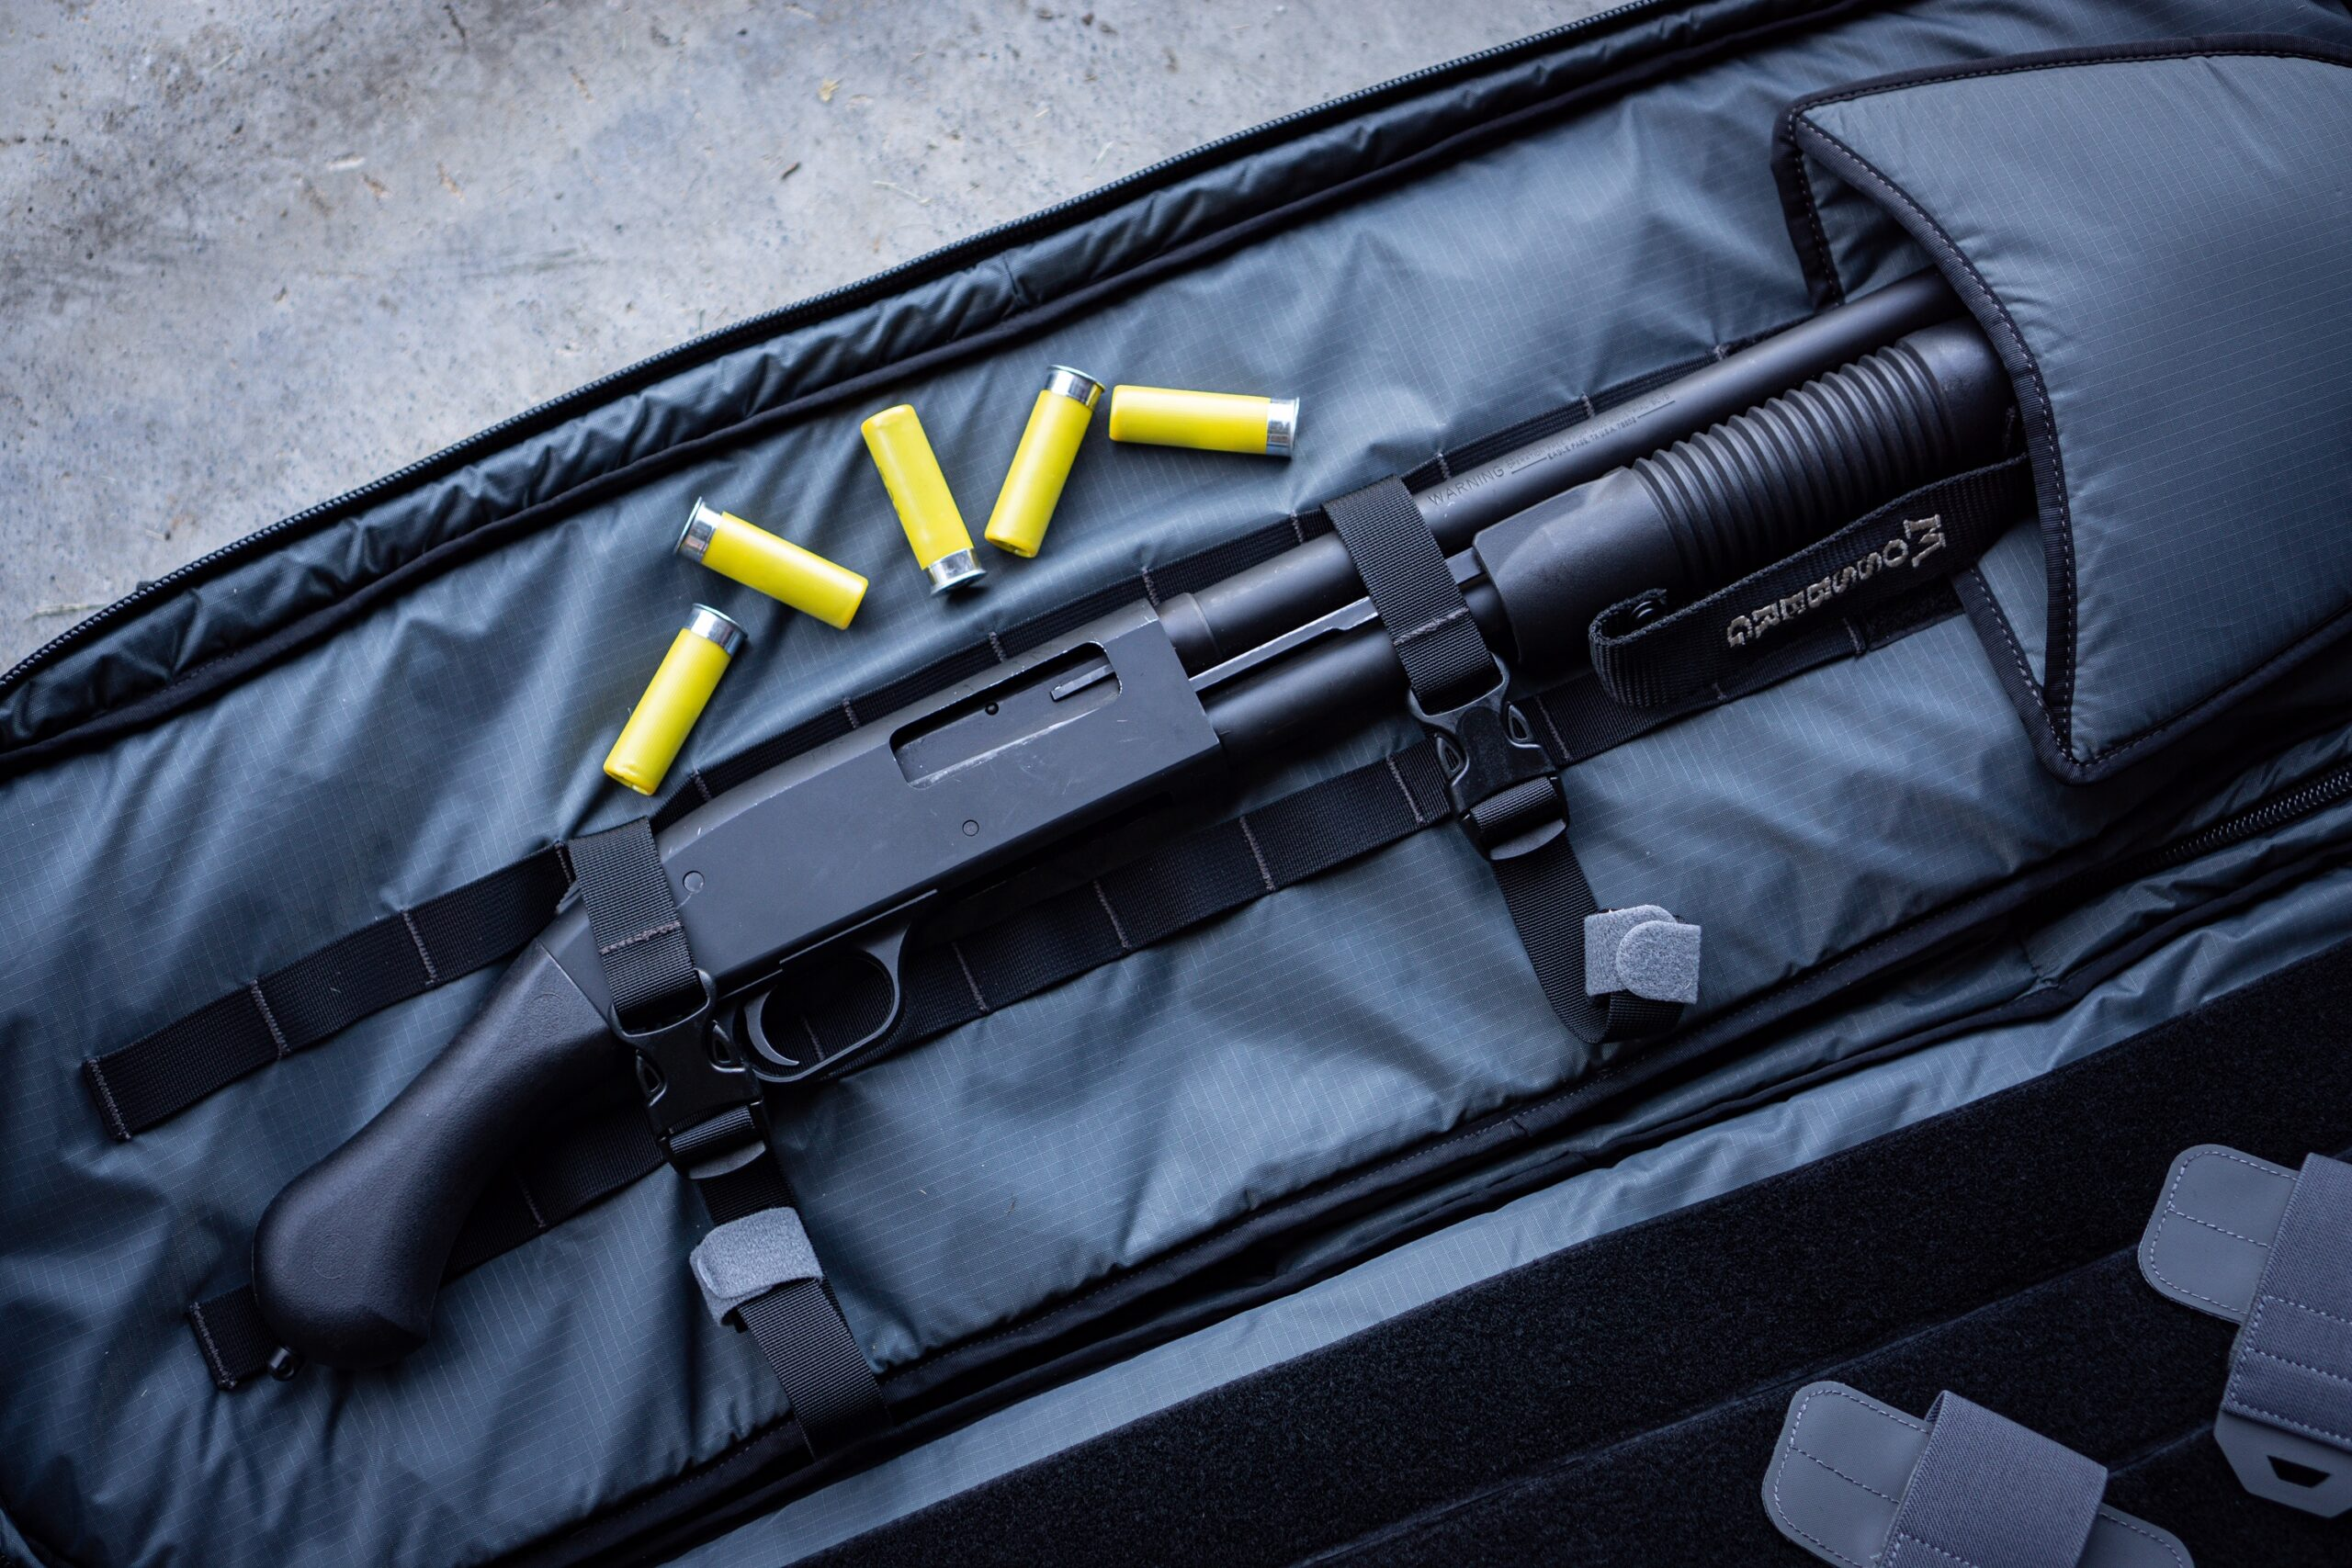 Mossberg Shockwave 20 gauge used in our review